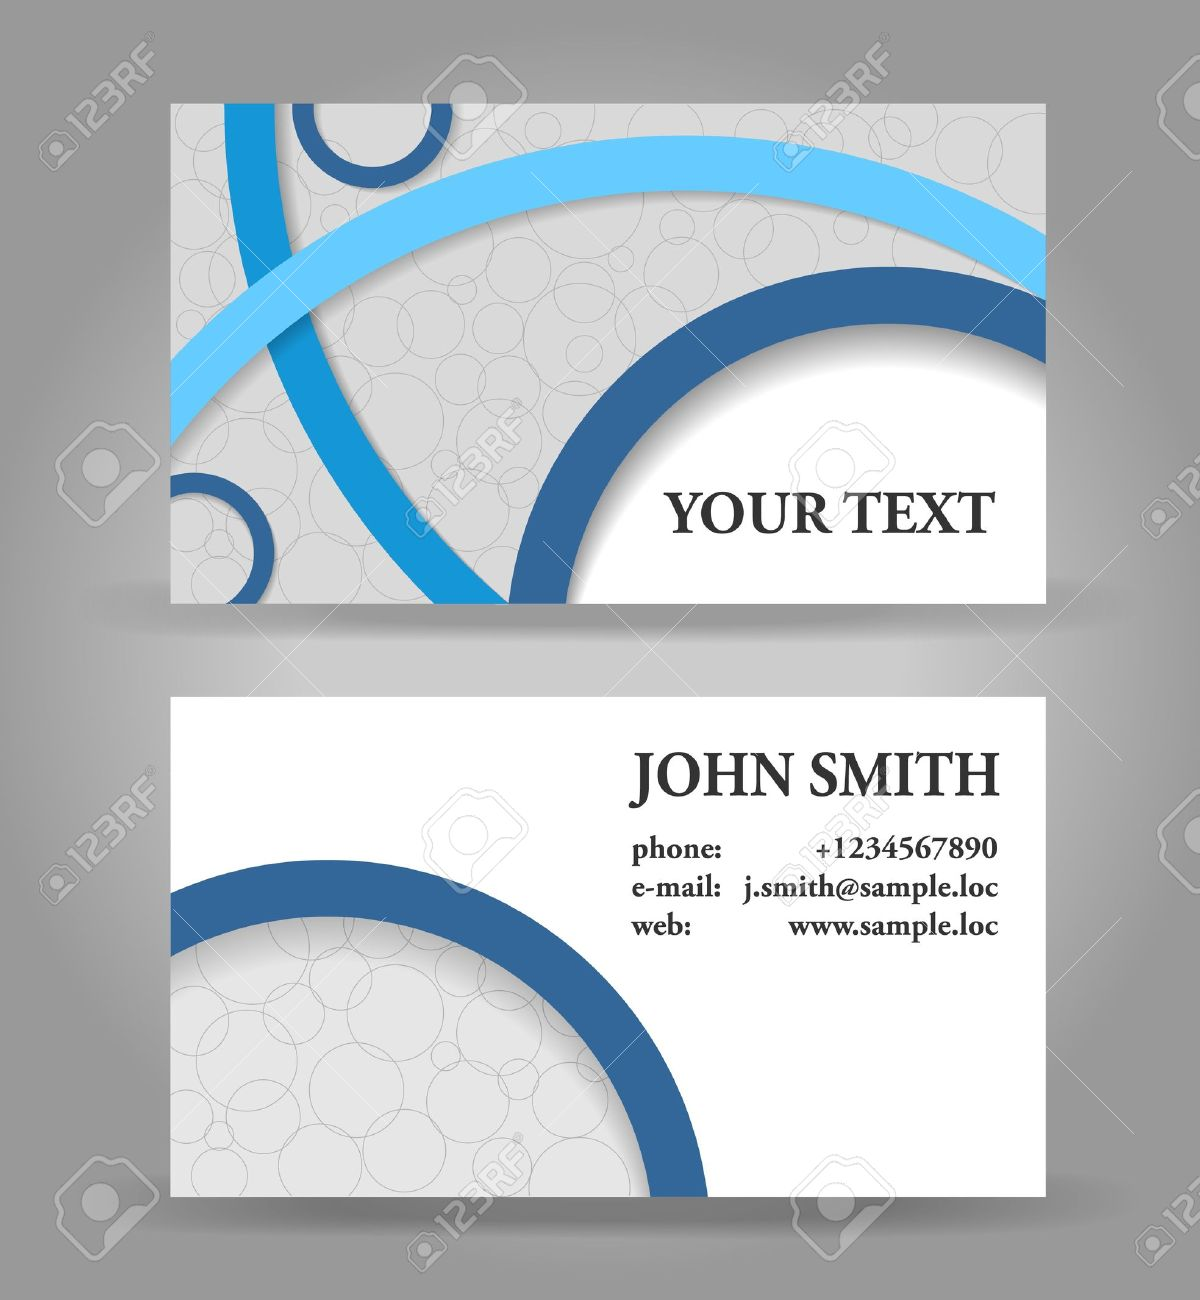 Blue and gray modern business card template royalty free cliparts blue and gray modern business card template stock vector 14585169 accmission Gallery